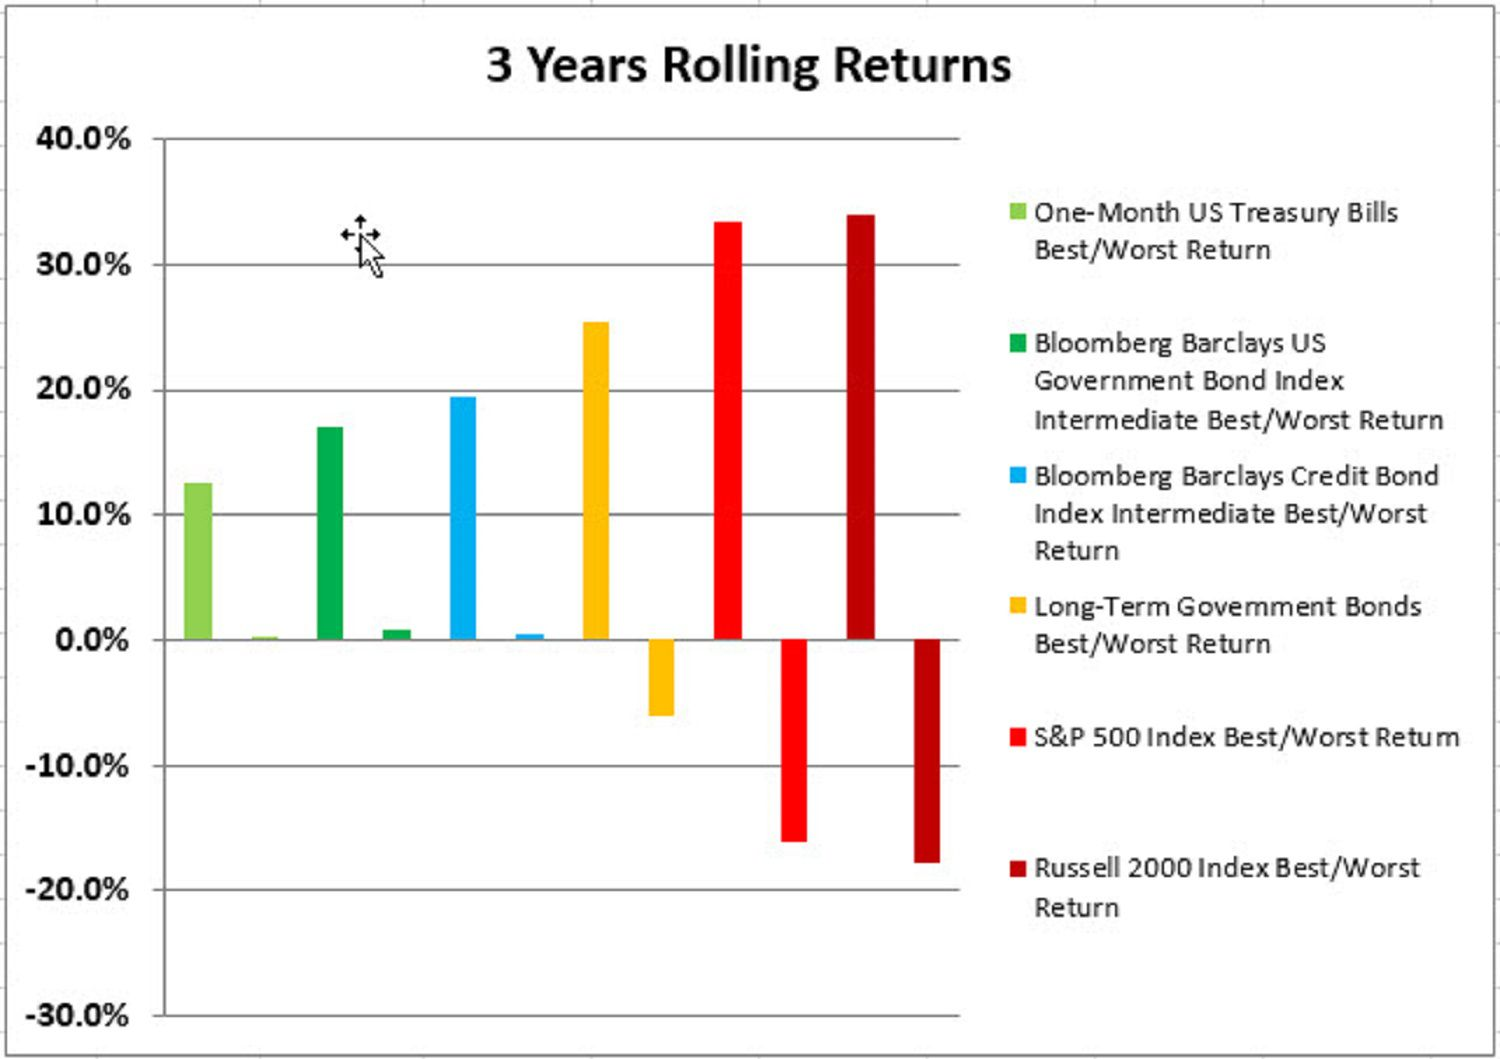 3 Years Rolling Returns